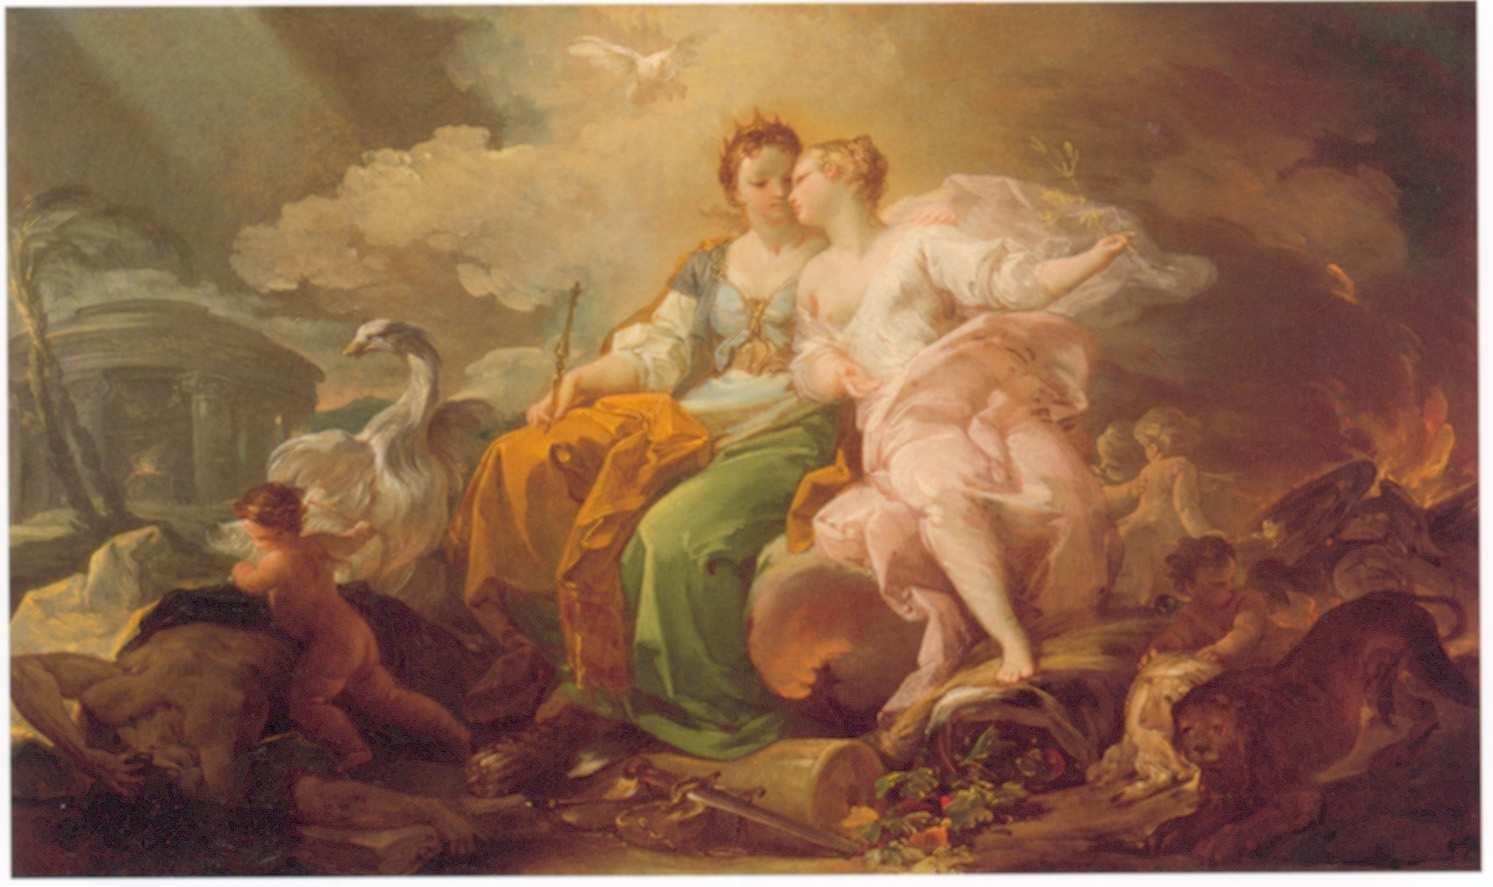 An Allegory of Justice and Peace